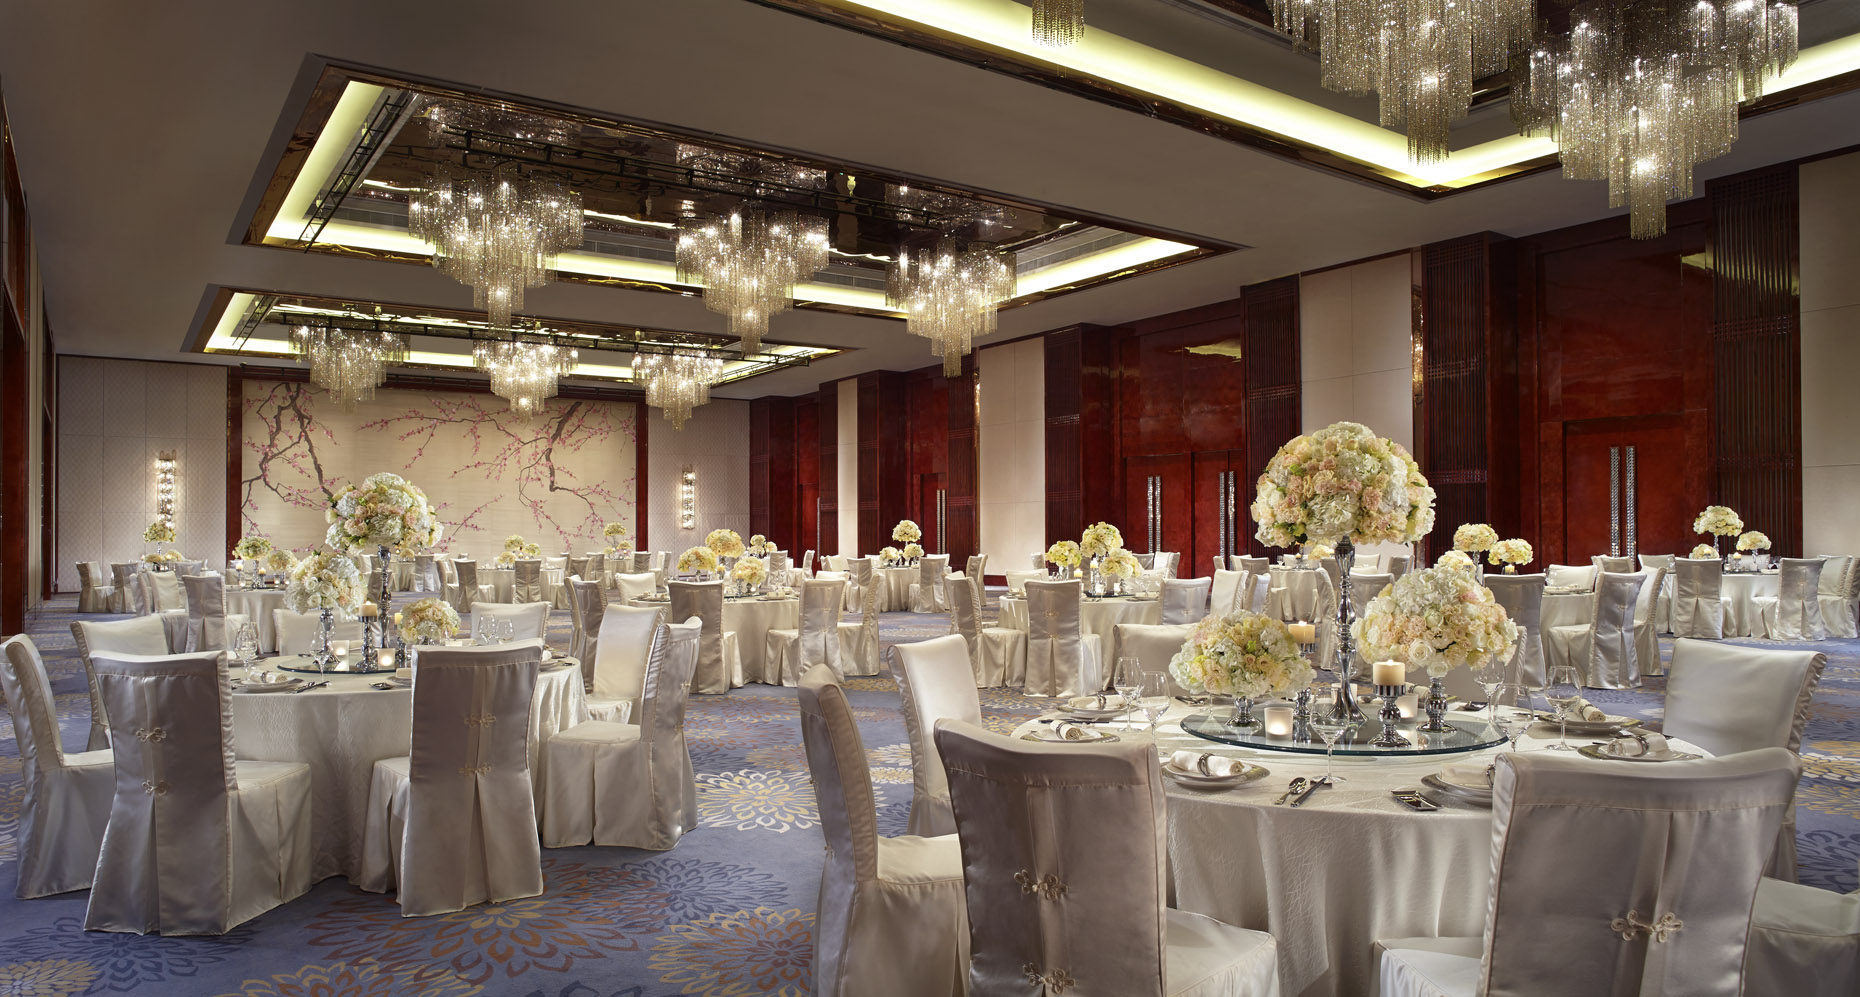 The Diamond Ballroom at The Ritz-Carlton, Chengdu | China |